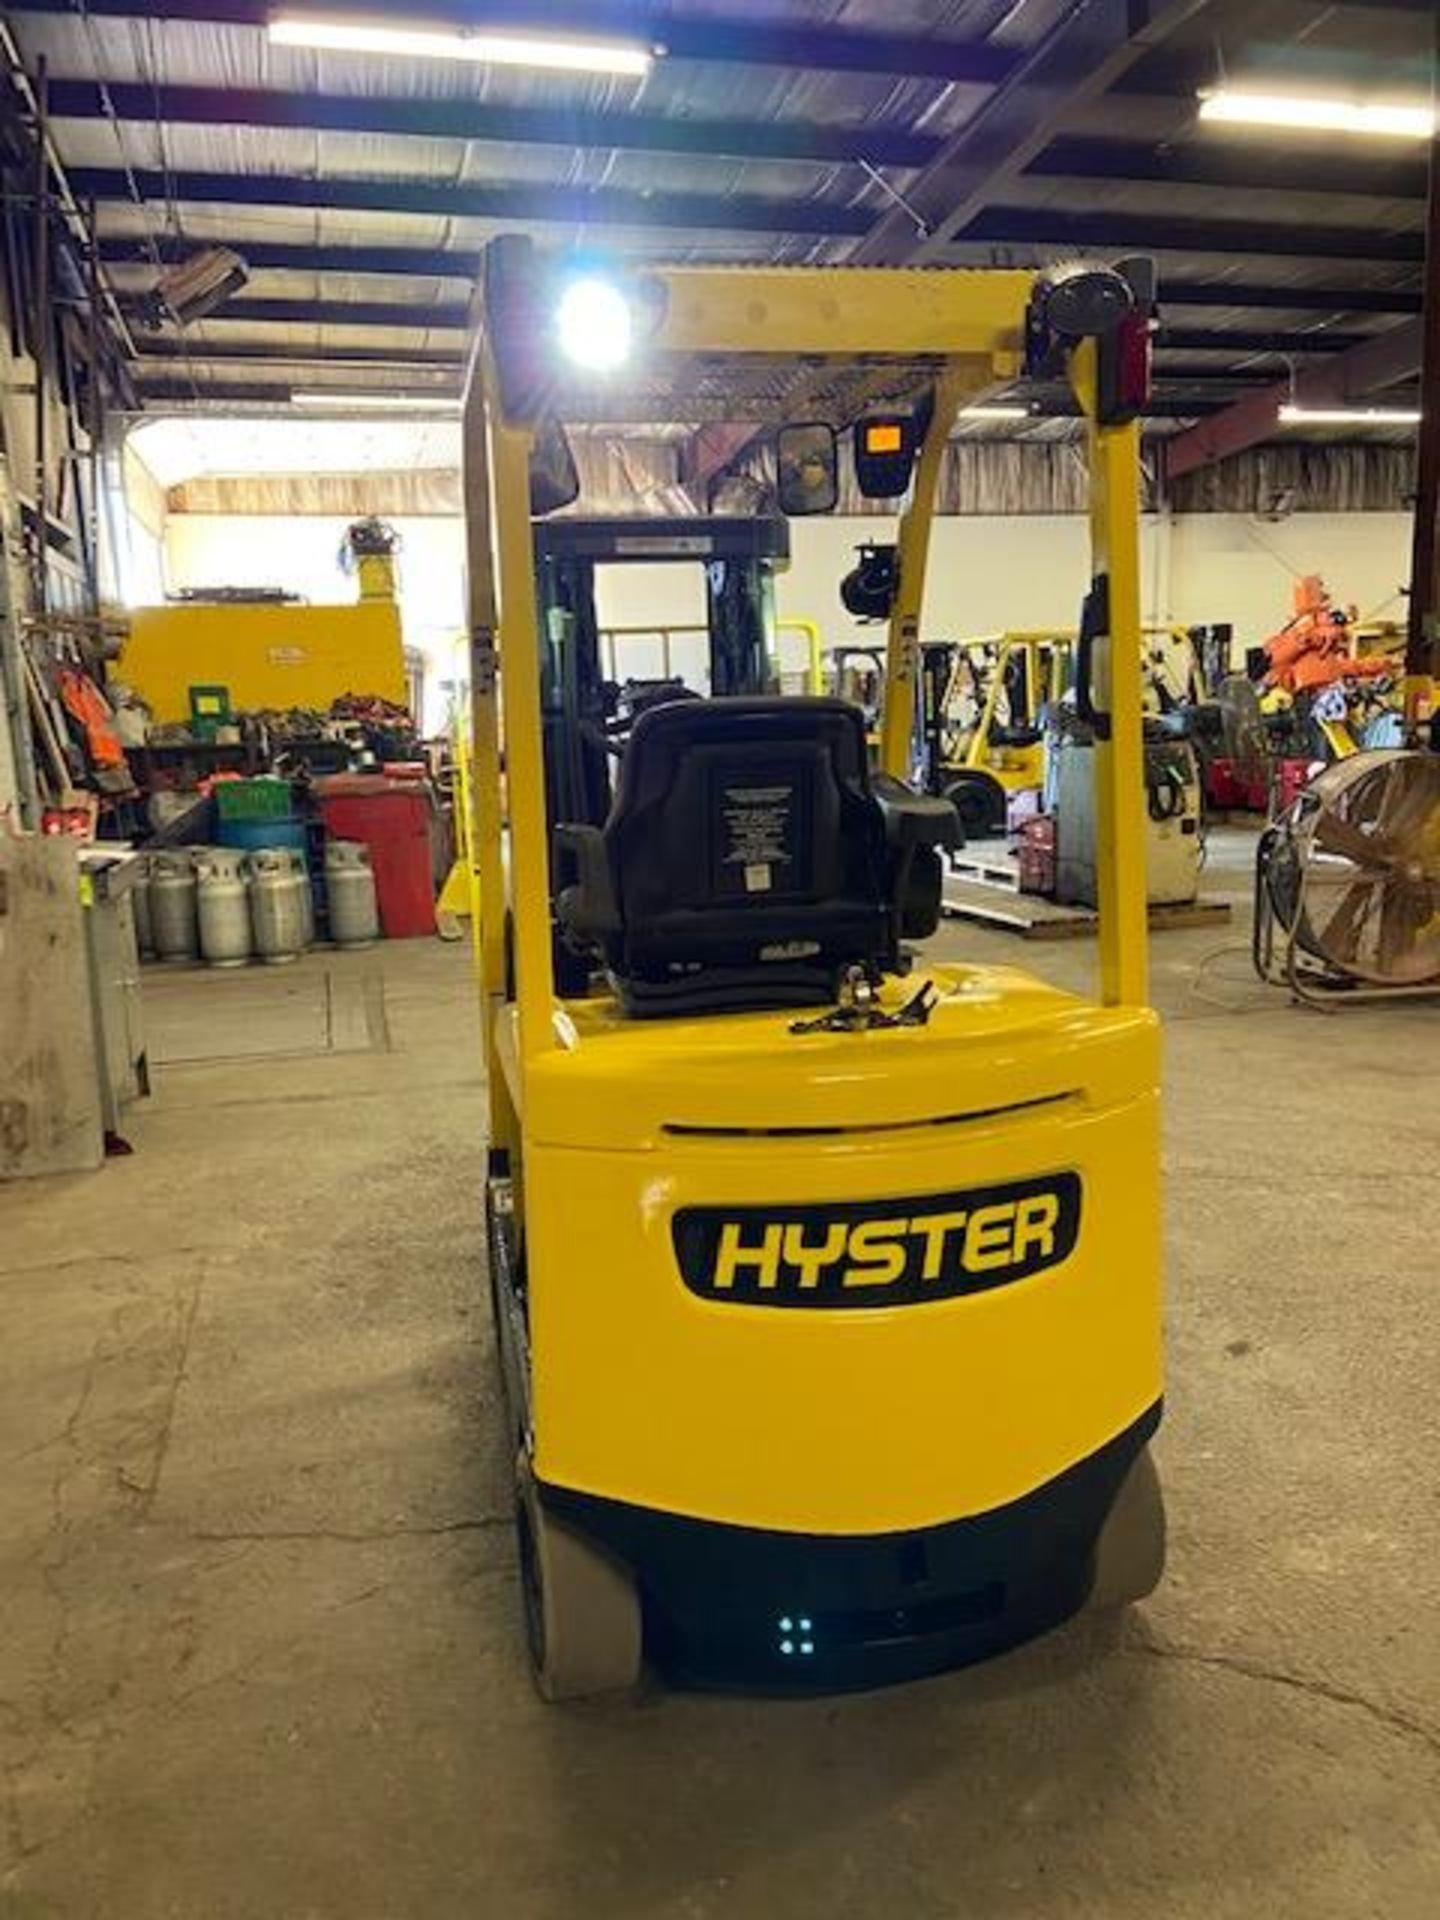 FREE CUSTOMS - 2014 Hyster 5000lbs Capacity Forklift Electric with 3-STAGE MAST with sideshift - Image 3 of 3